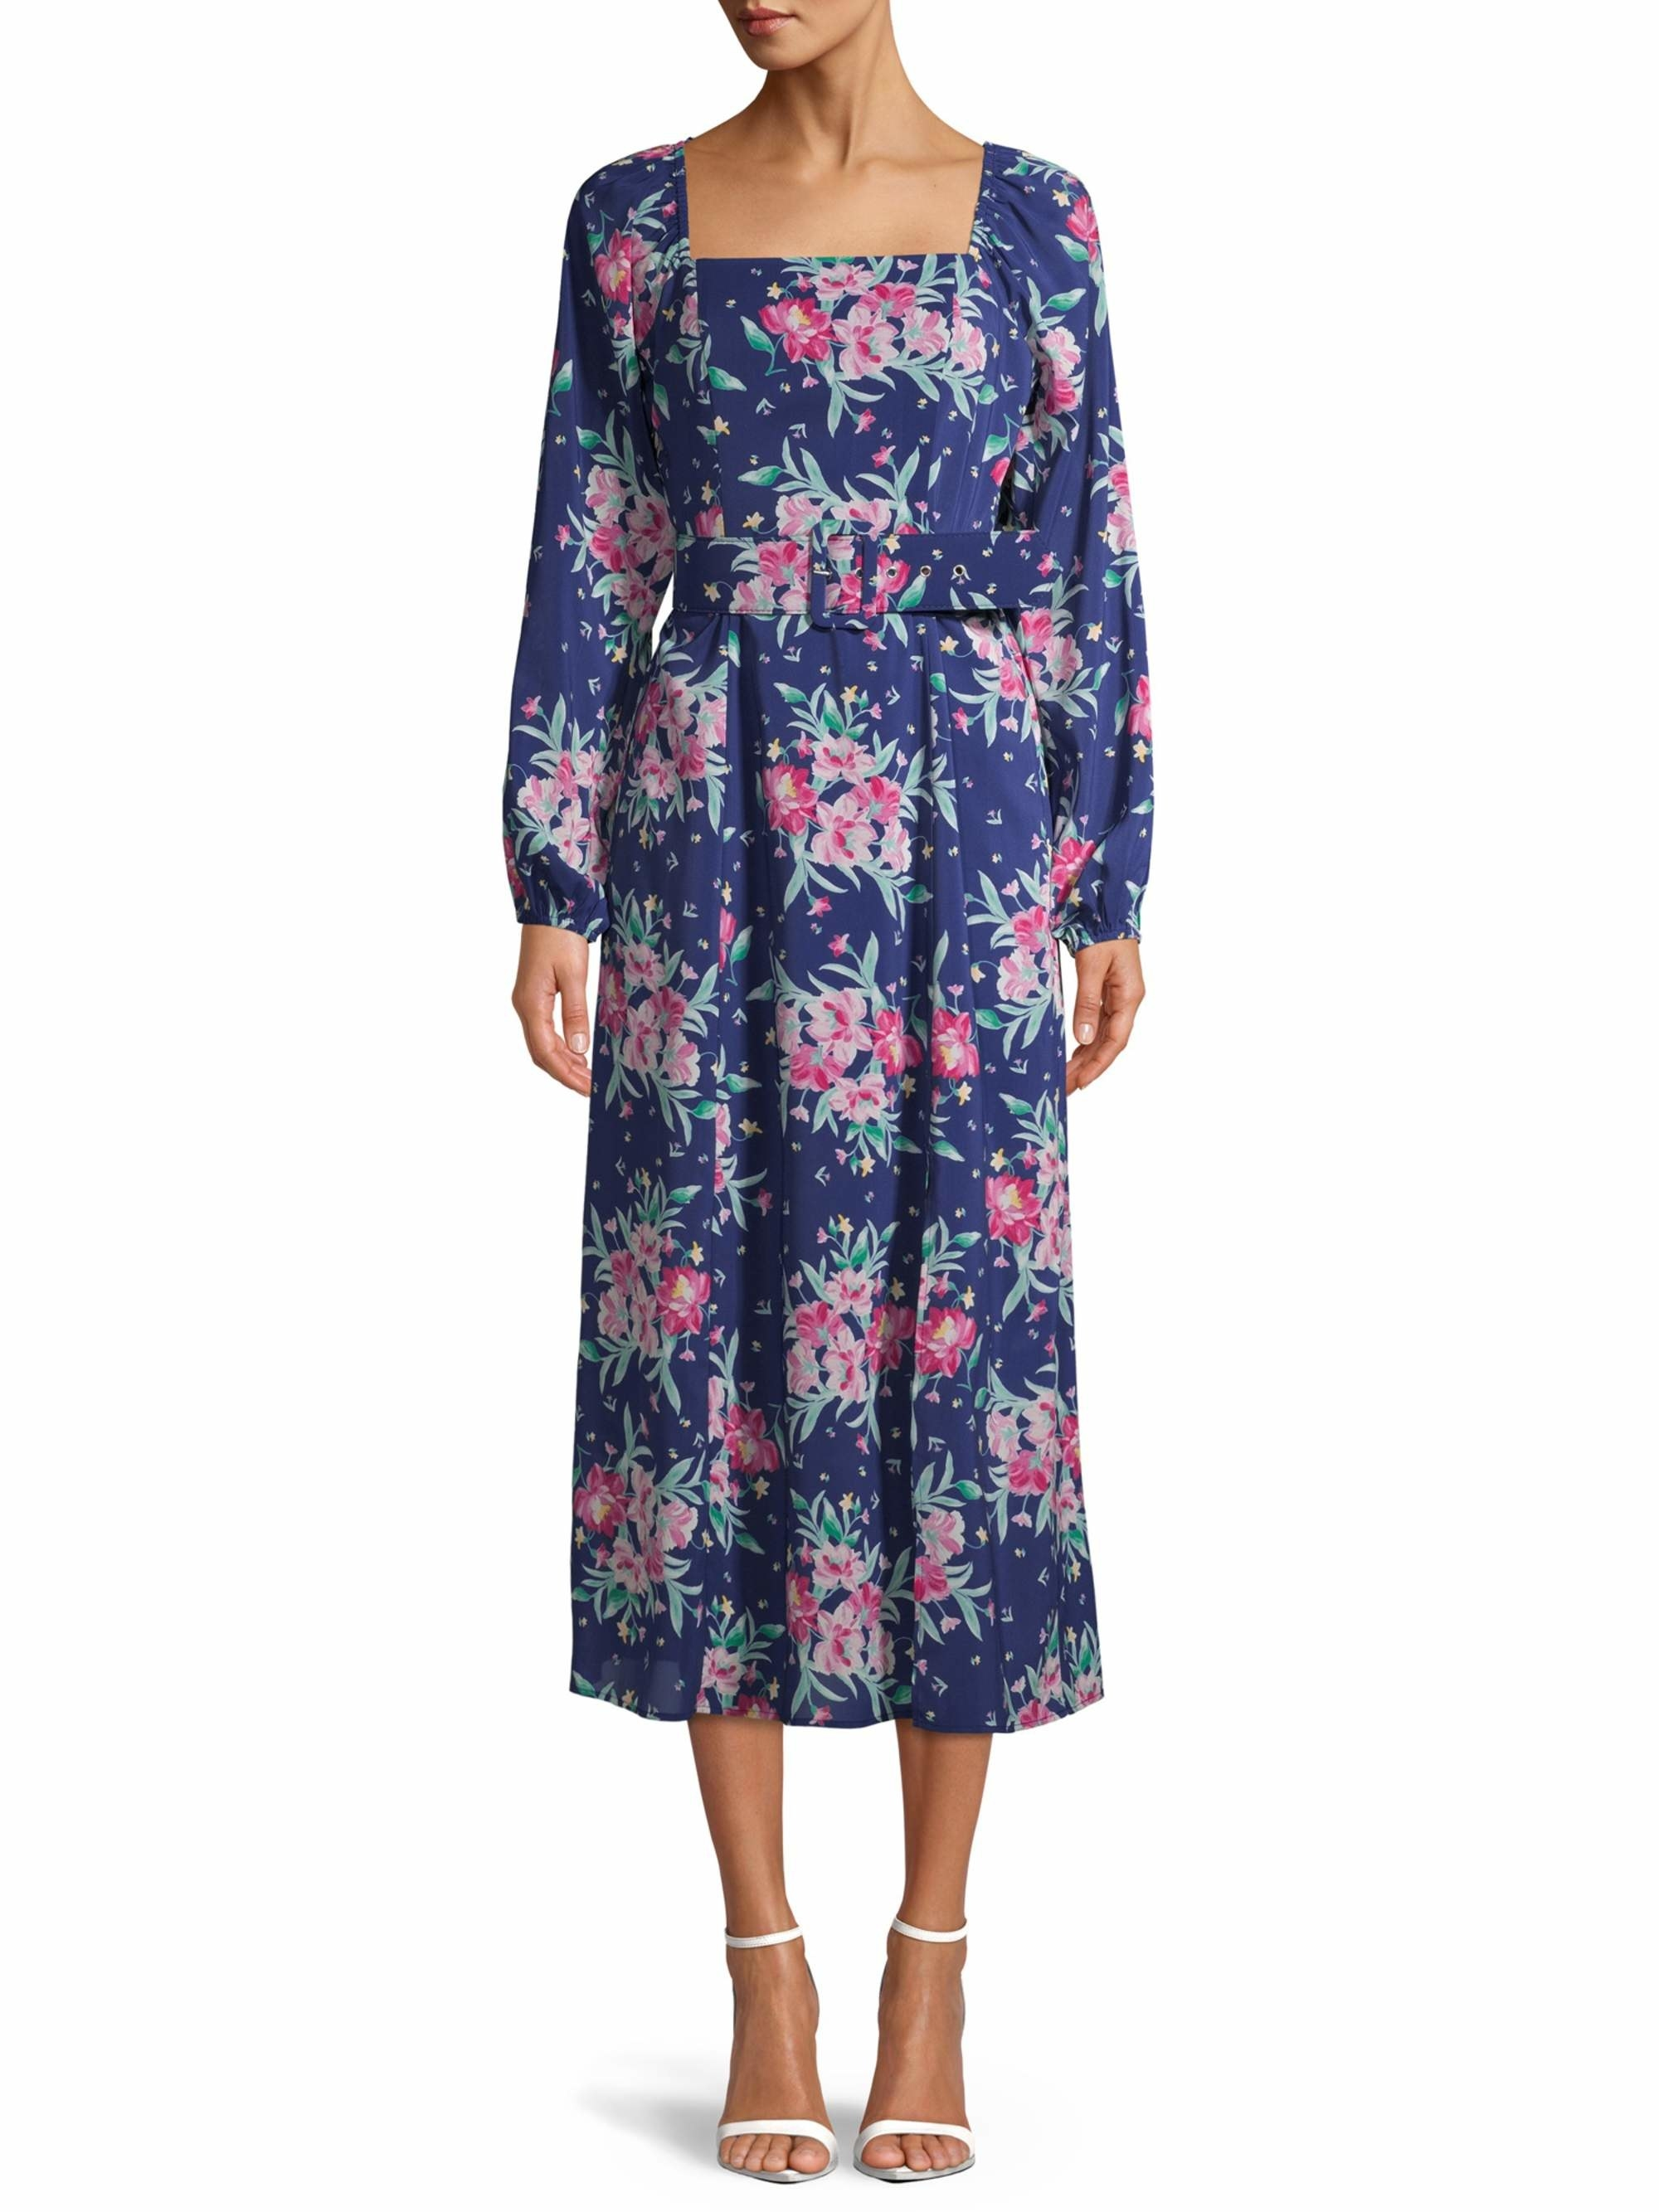 The navy floral dress